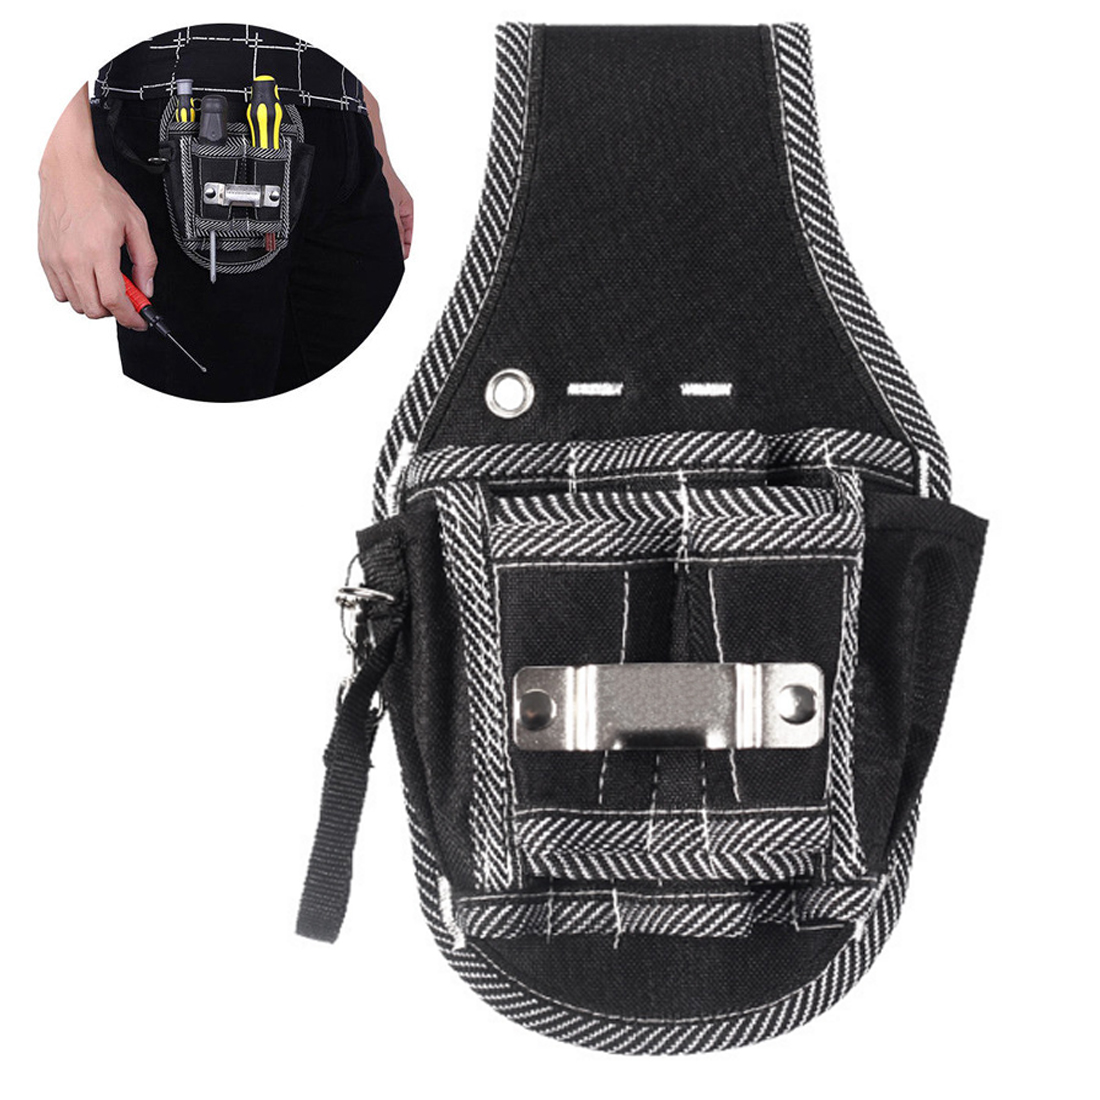 Pocket-Tool-Bag Screwdriver Belt Utility-Kit-Holder Electrician-Kit Nylon With 600D 9-In-1